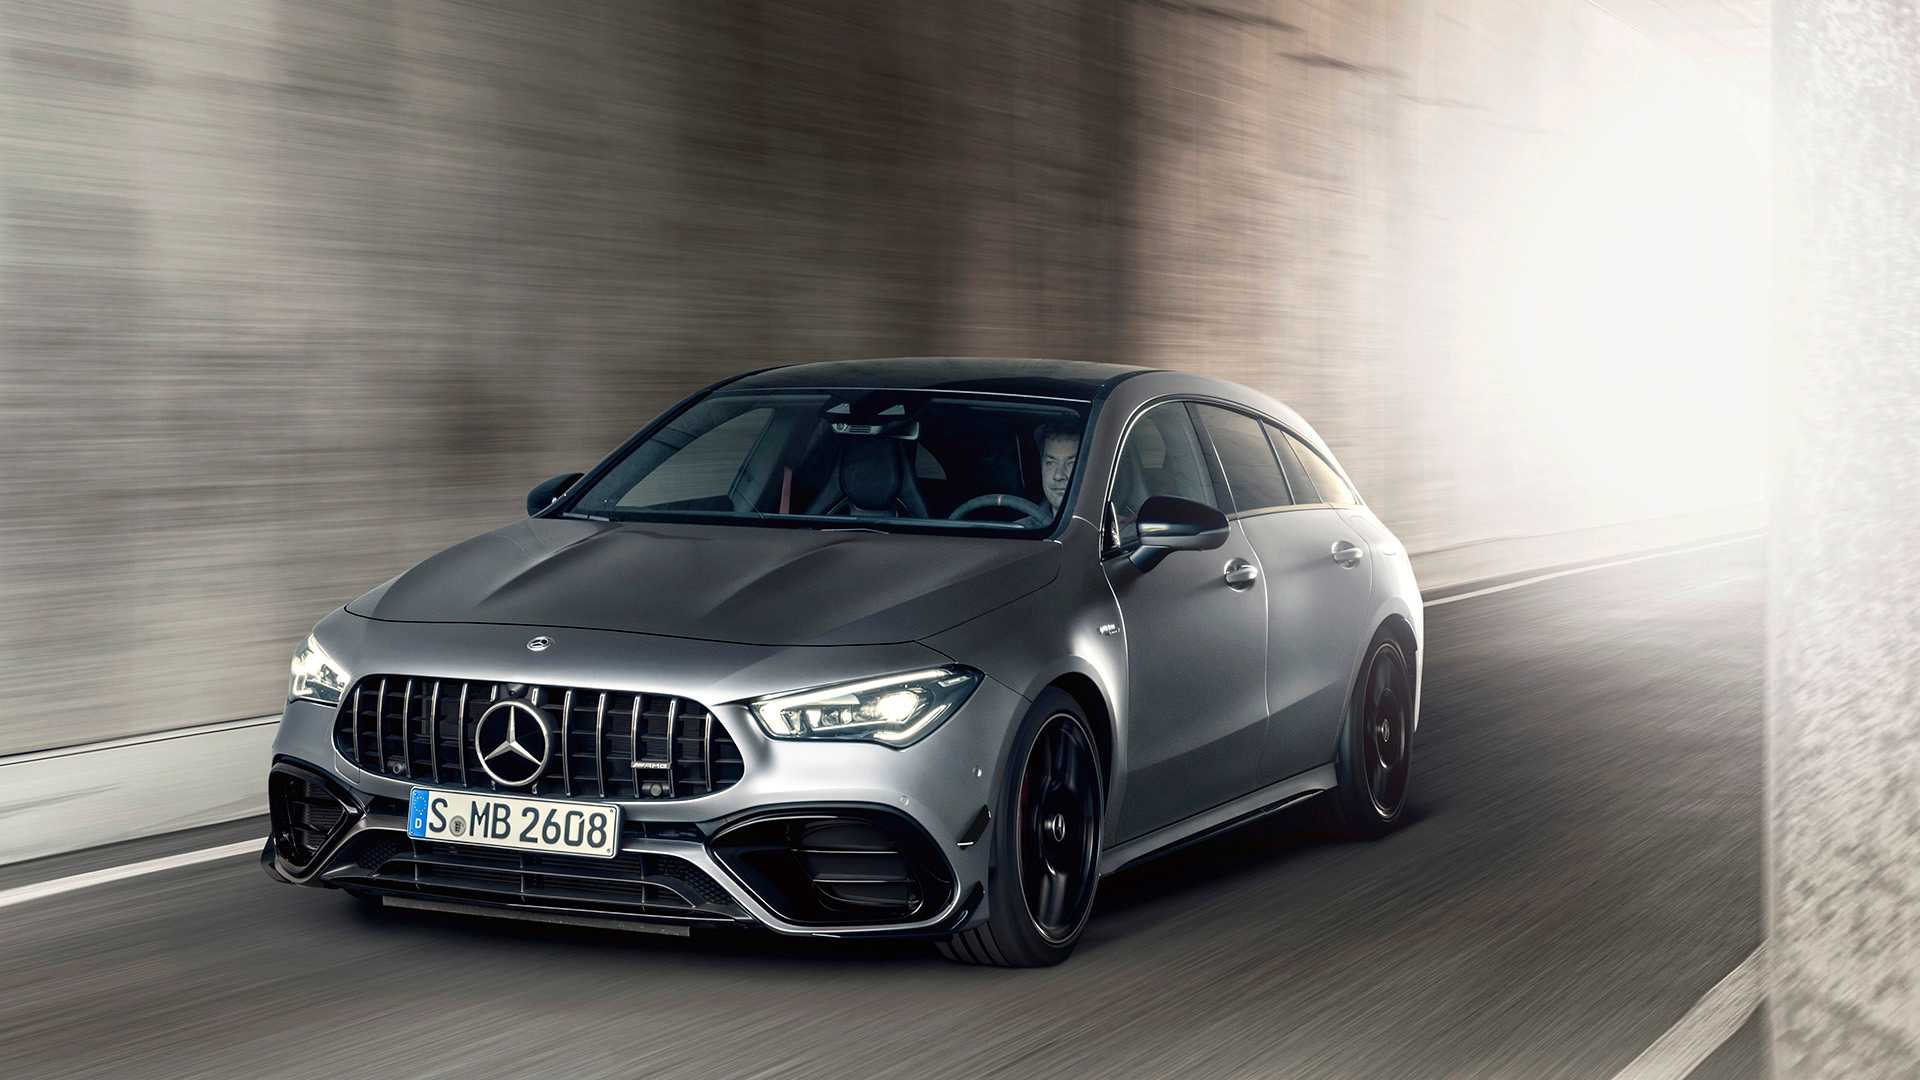 2020 Mercedes-AMG CLA 45 S 4MATIC+ Shooting Brake Front Wallpapers (11)